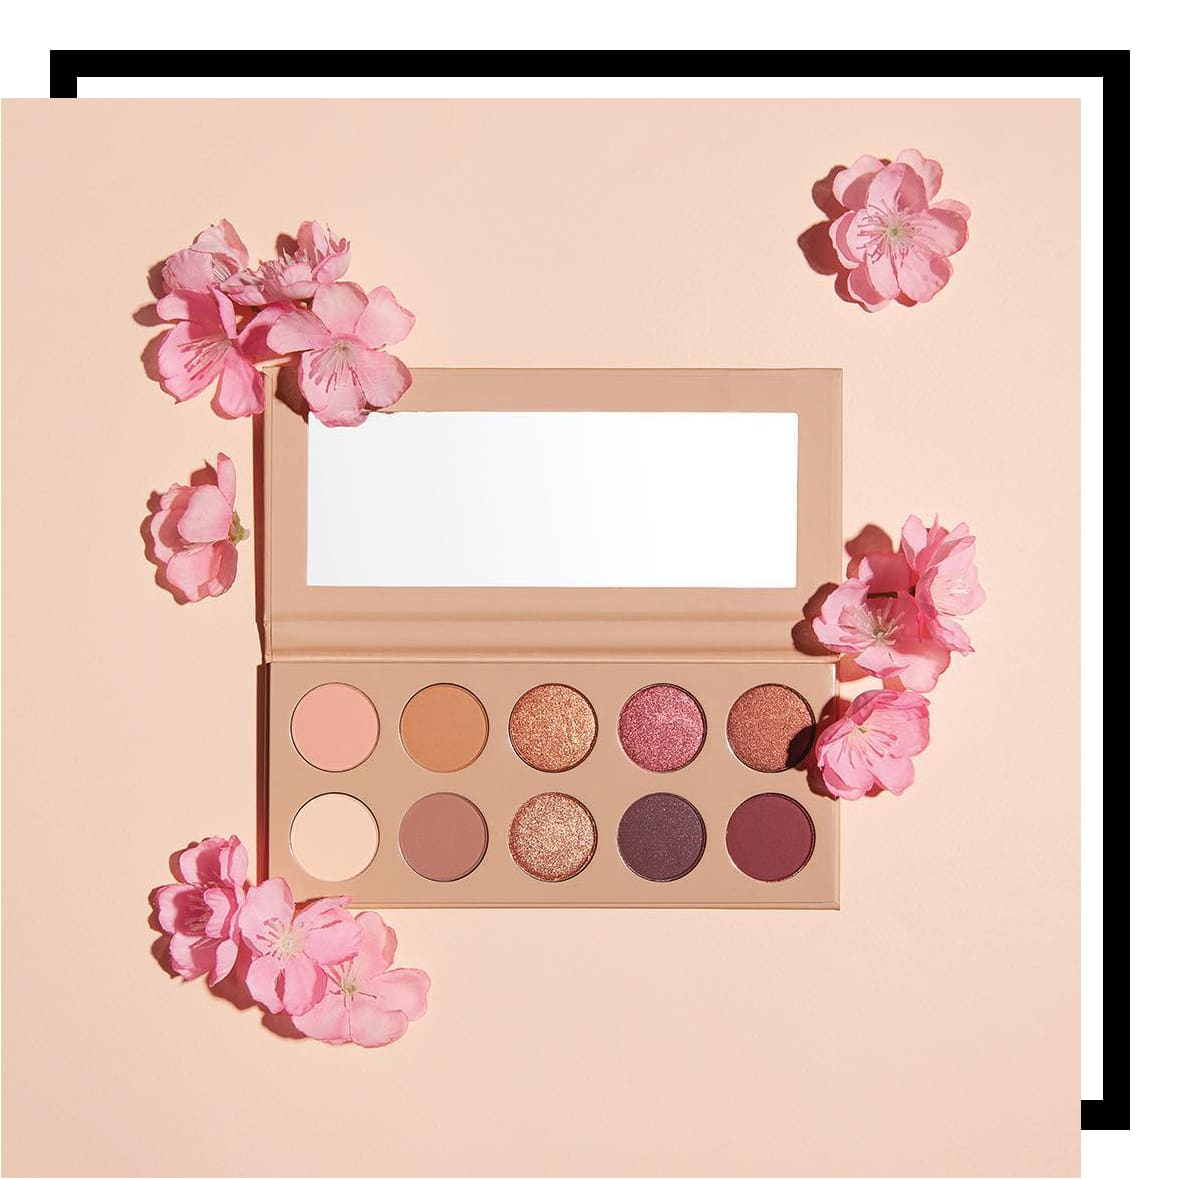 KKW Beauty Classic Blossom Collection Cherry Blossom Palette